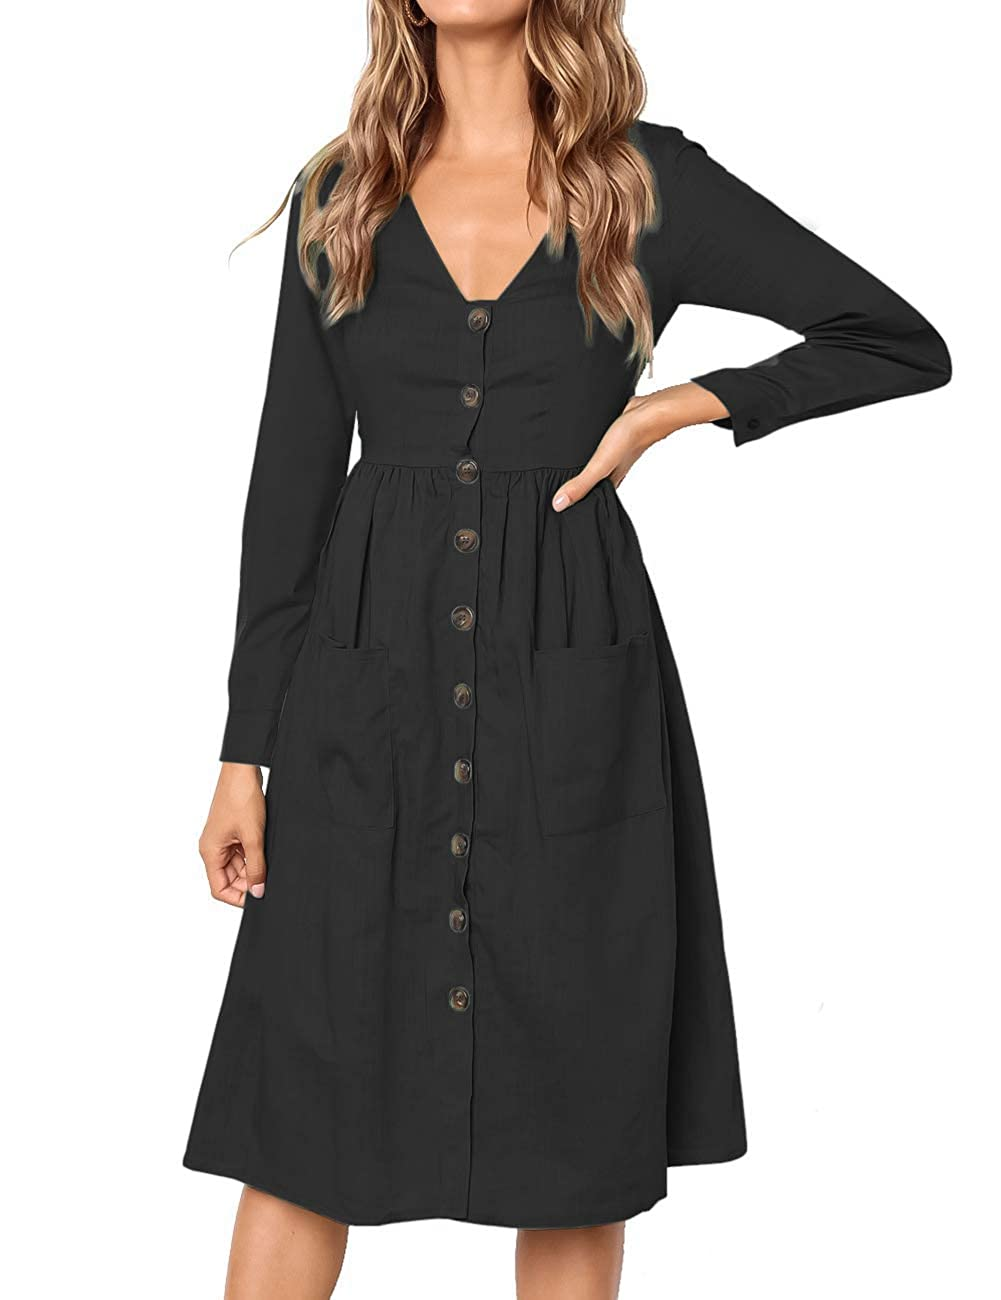 8fef99f8 MEROKEETY Women's Summer Short Sleeve V Neck Button Down Swing Midi Dress  with Pockets at Amazon Women's Clothing store: